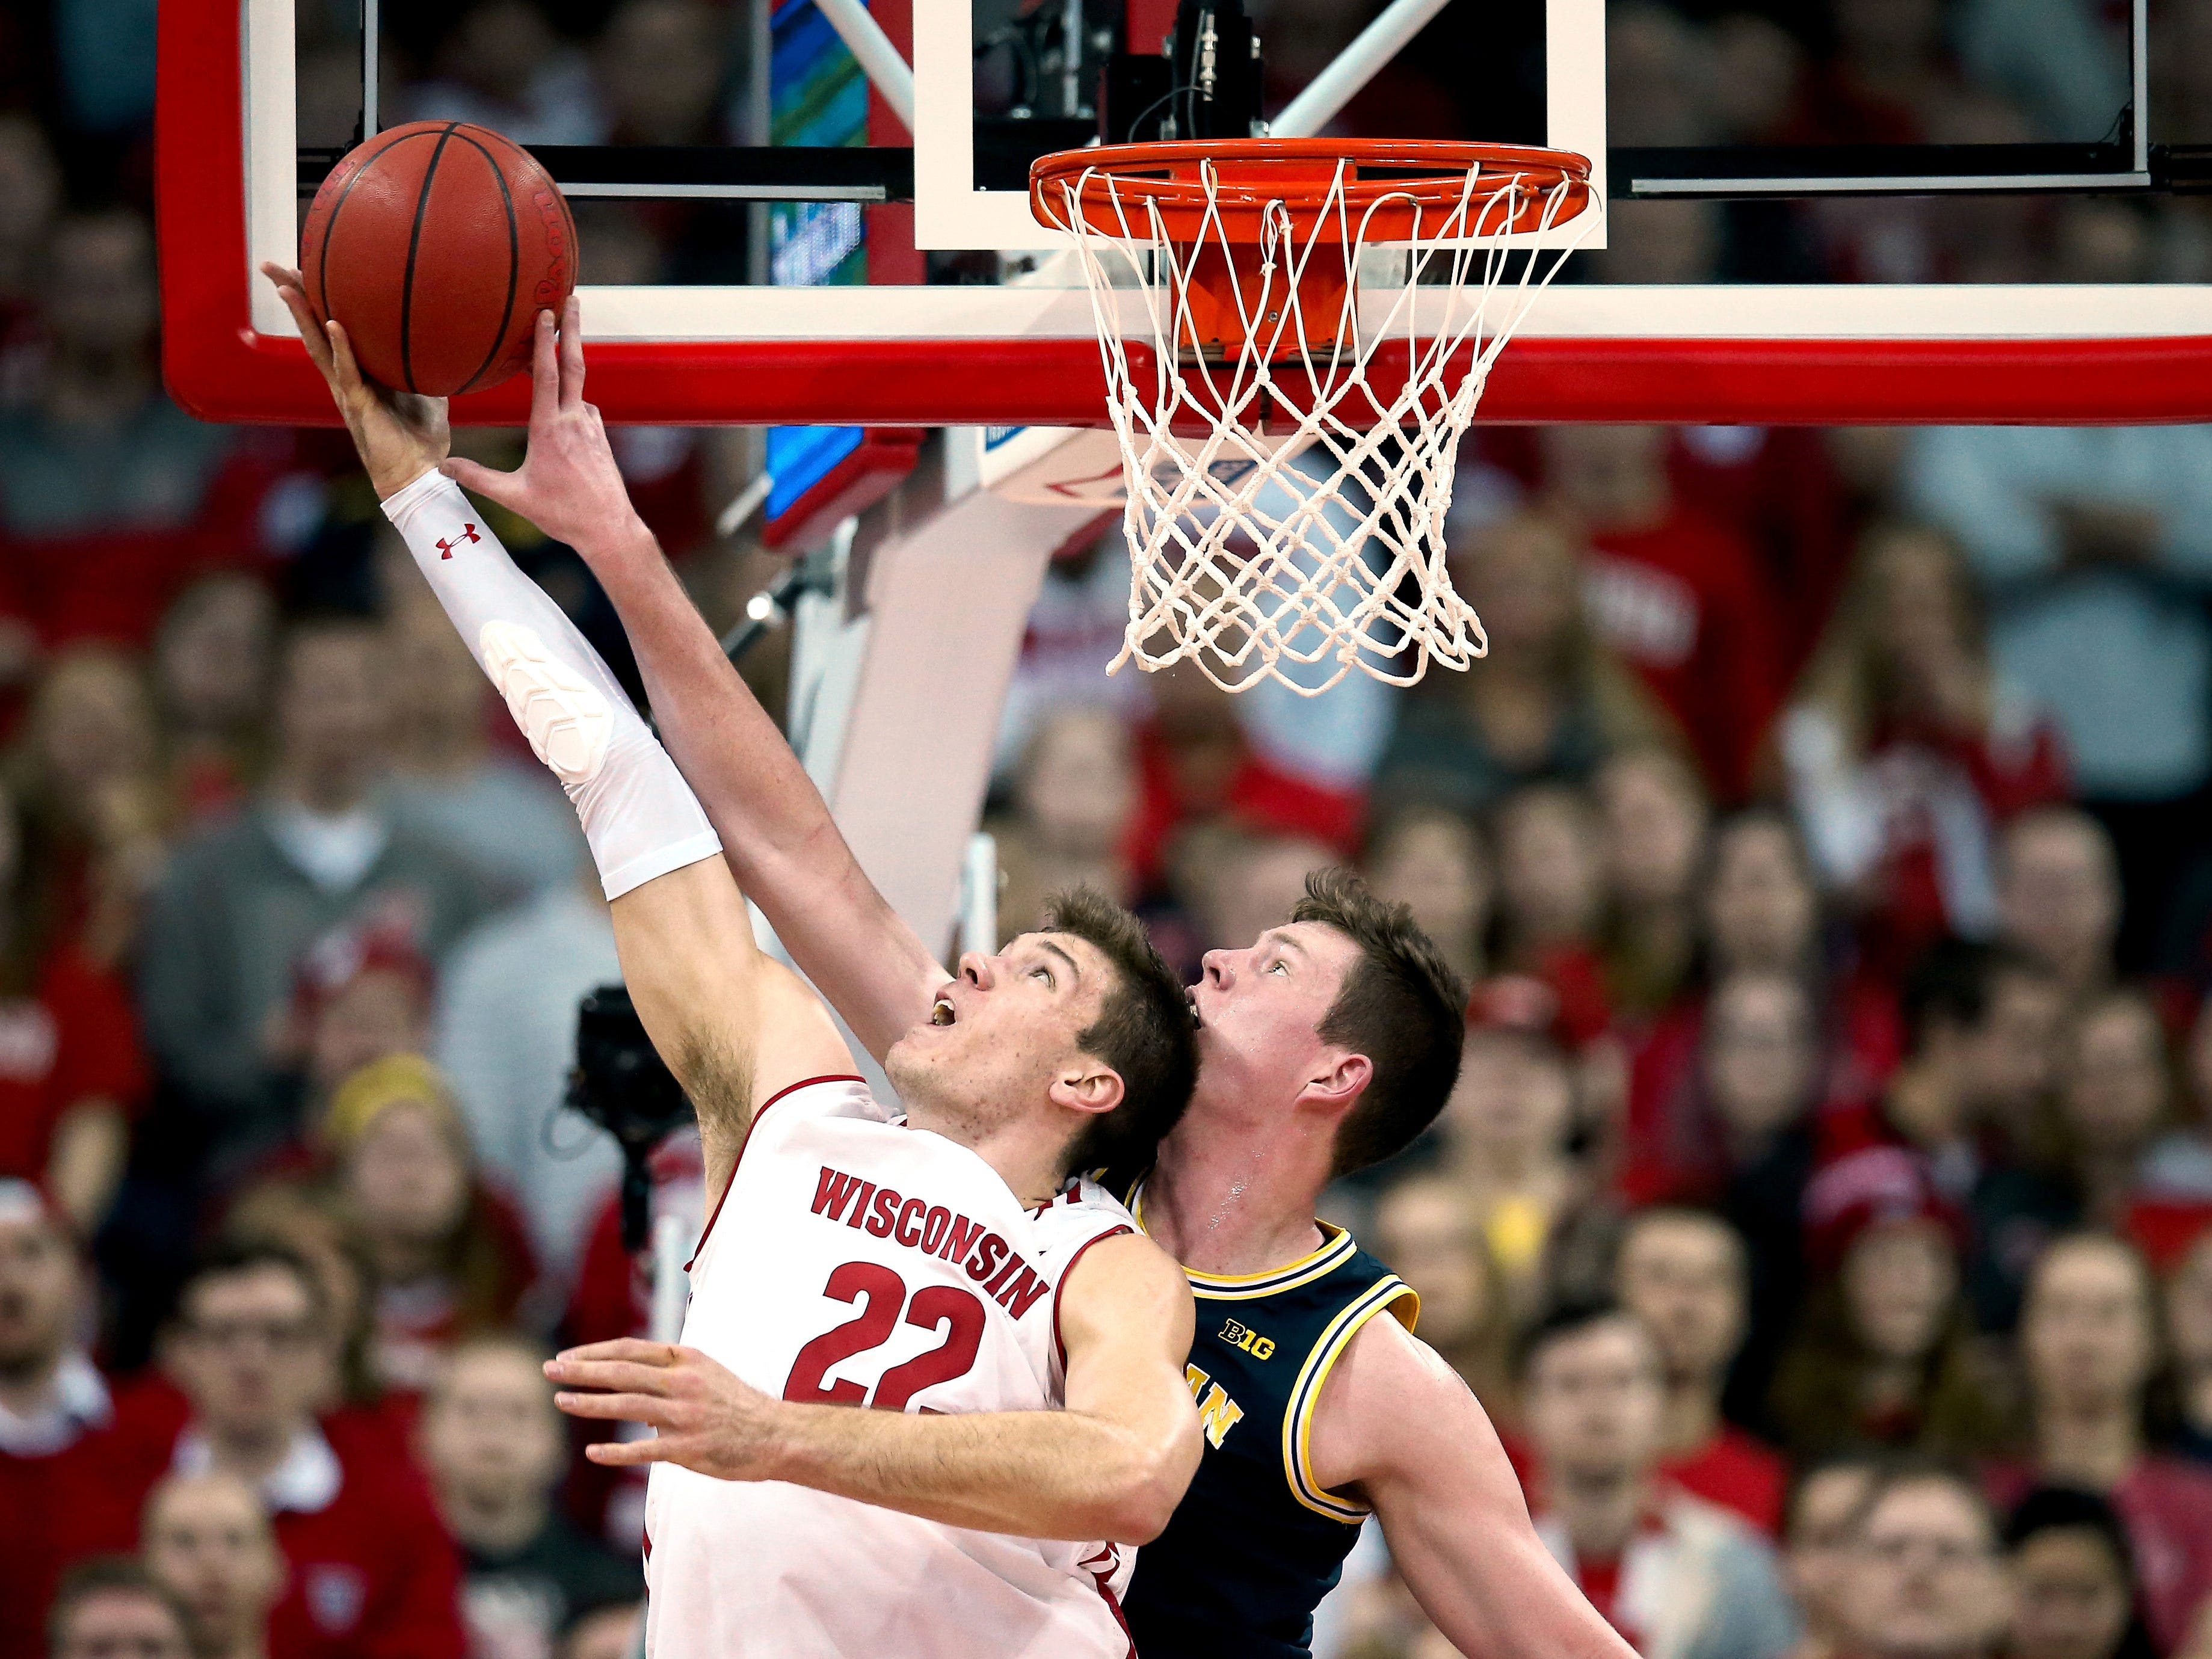 Michigan's Jon Teske blocks a shot attempt by Wisconsin's Ethan Happ in the first half at the Kohl Center on Jan. 19, 2019 in Madison, Wisc.